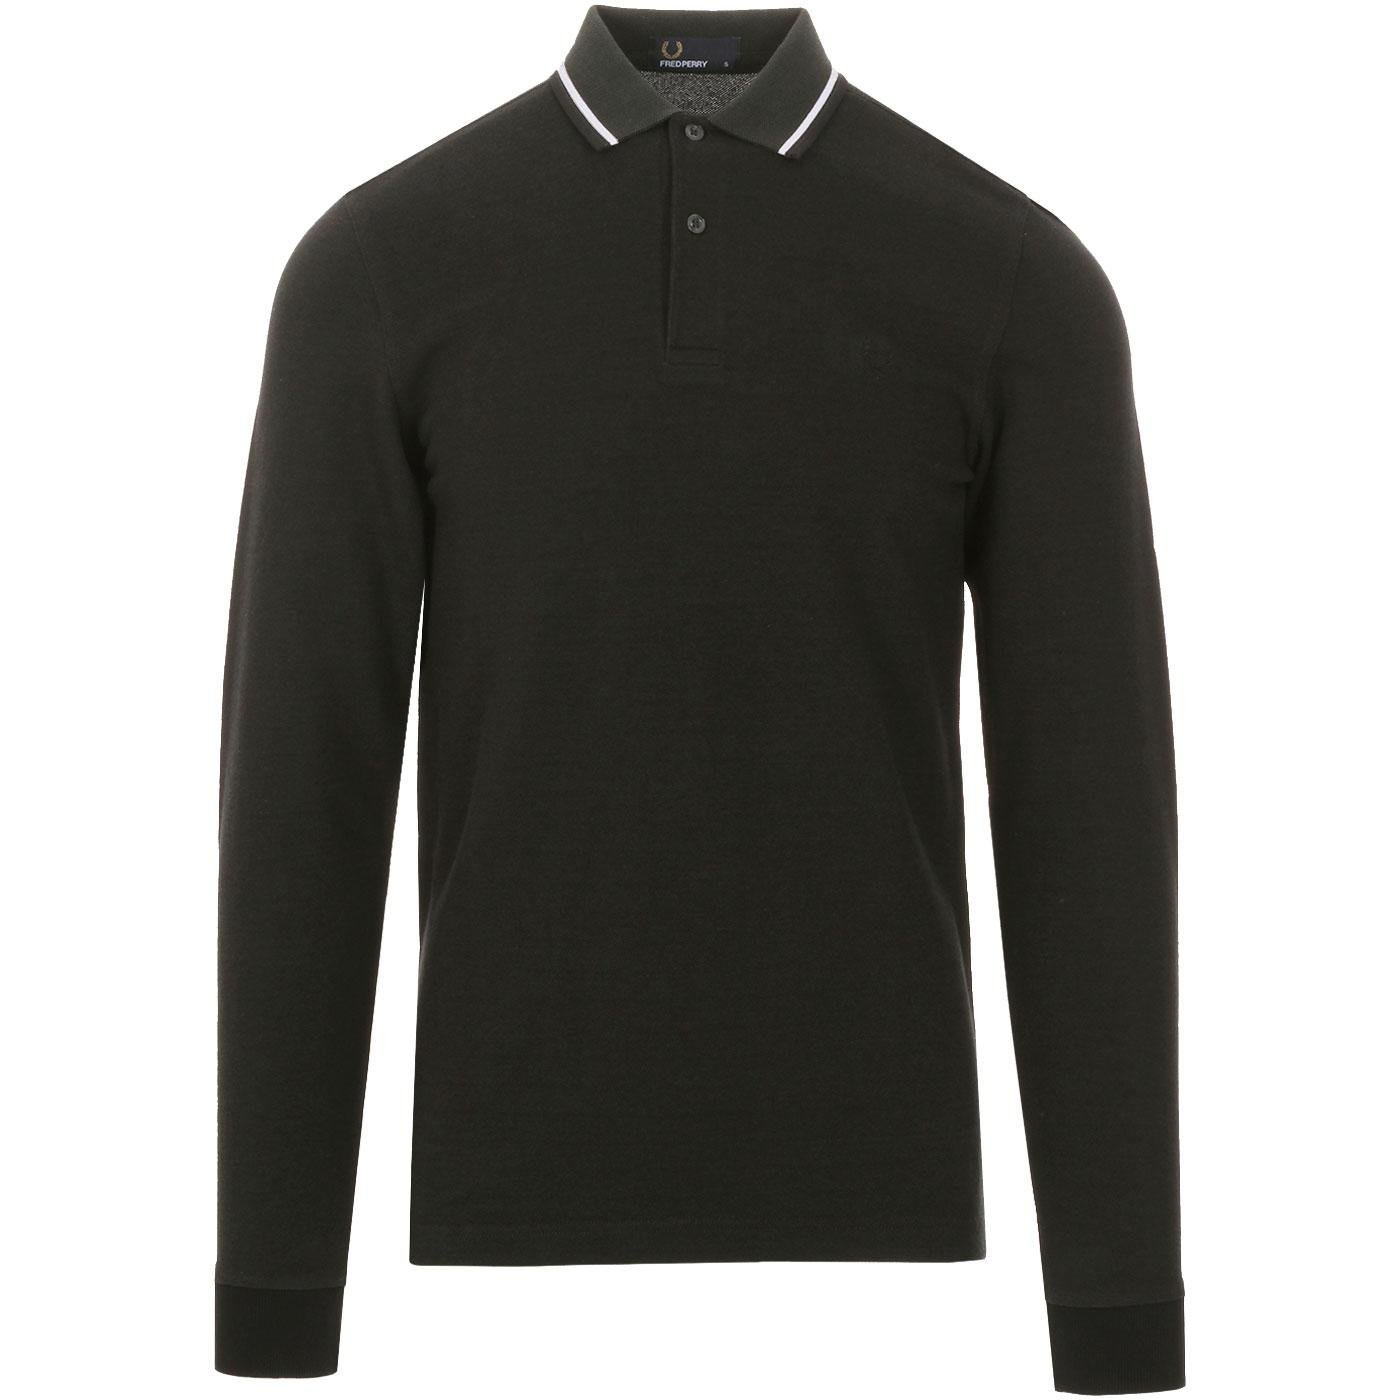 FRED PERRY Men's Long Sleeve Twin Tipped Polo HG